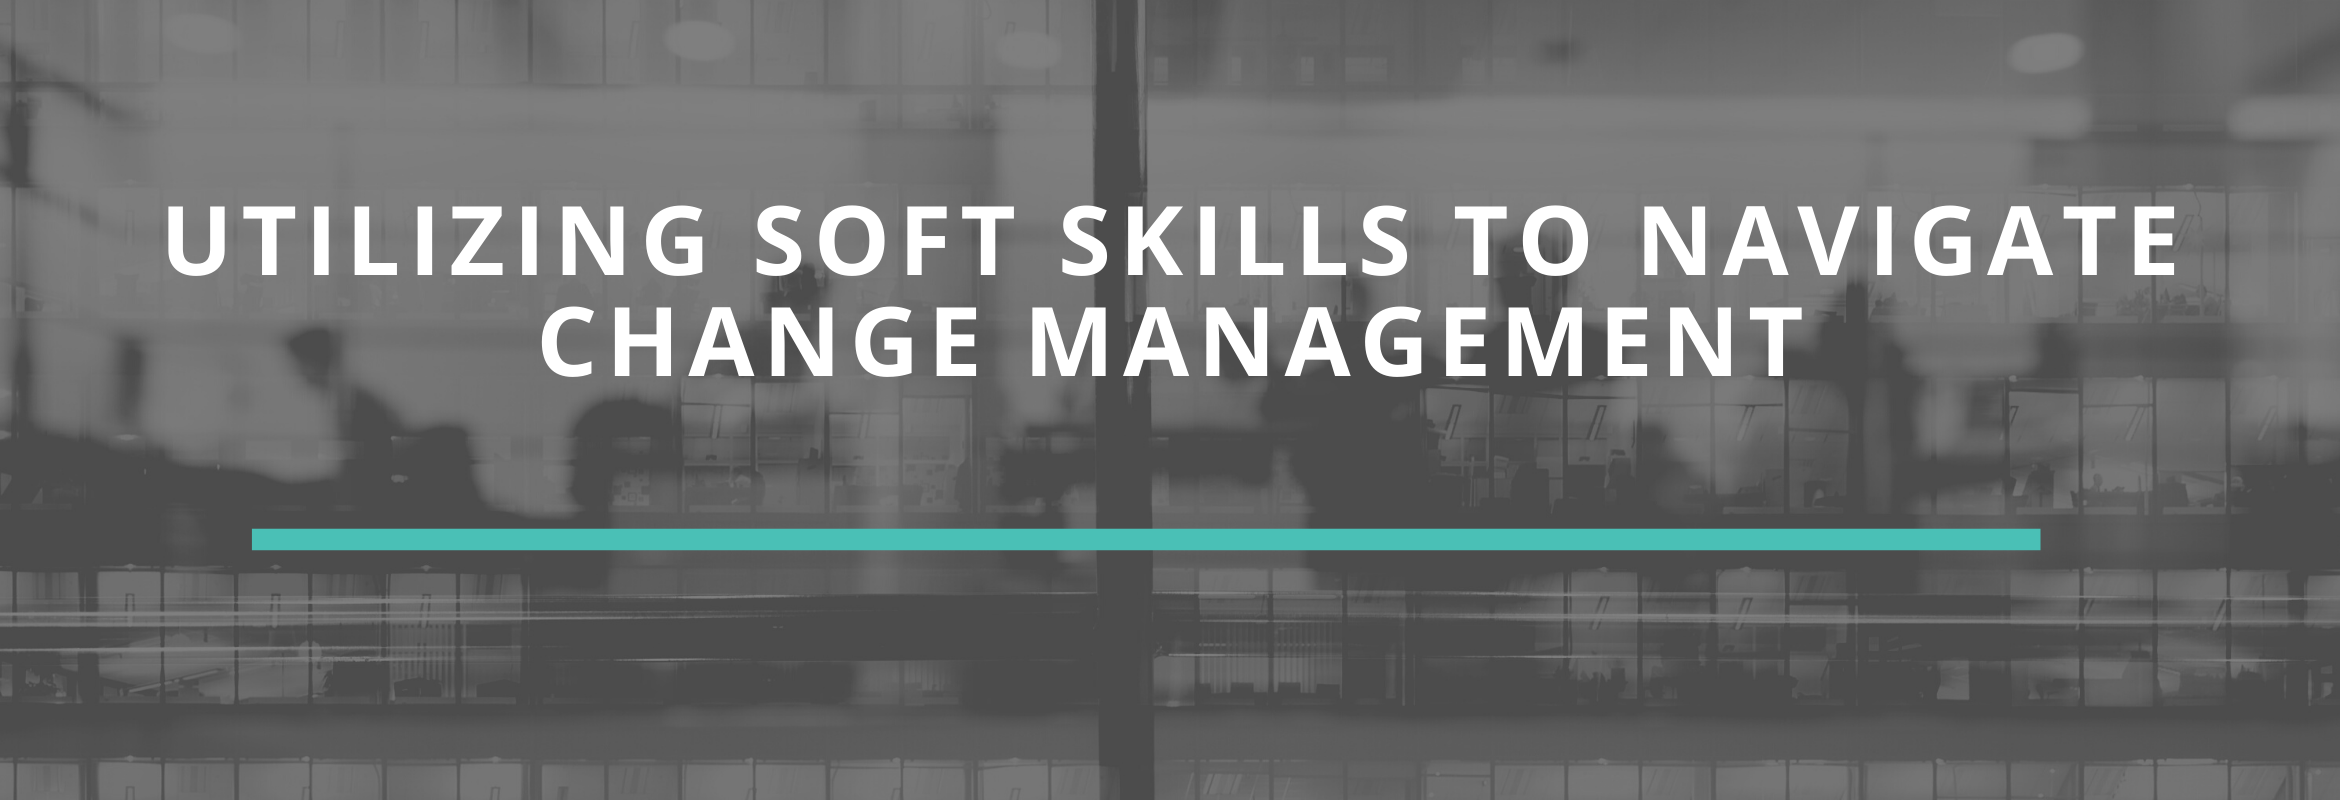 Kimberly Morelli discusses how essential components such as soft skills and change management can be.